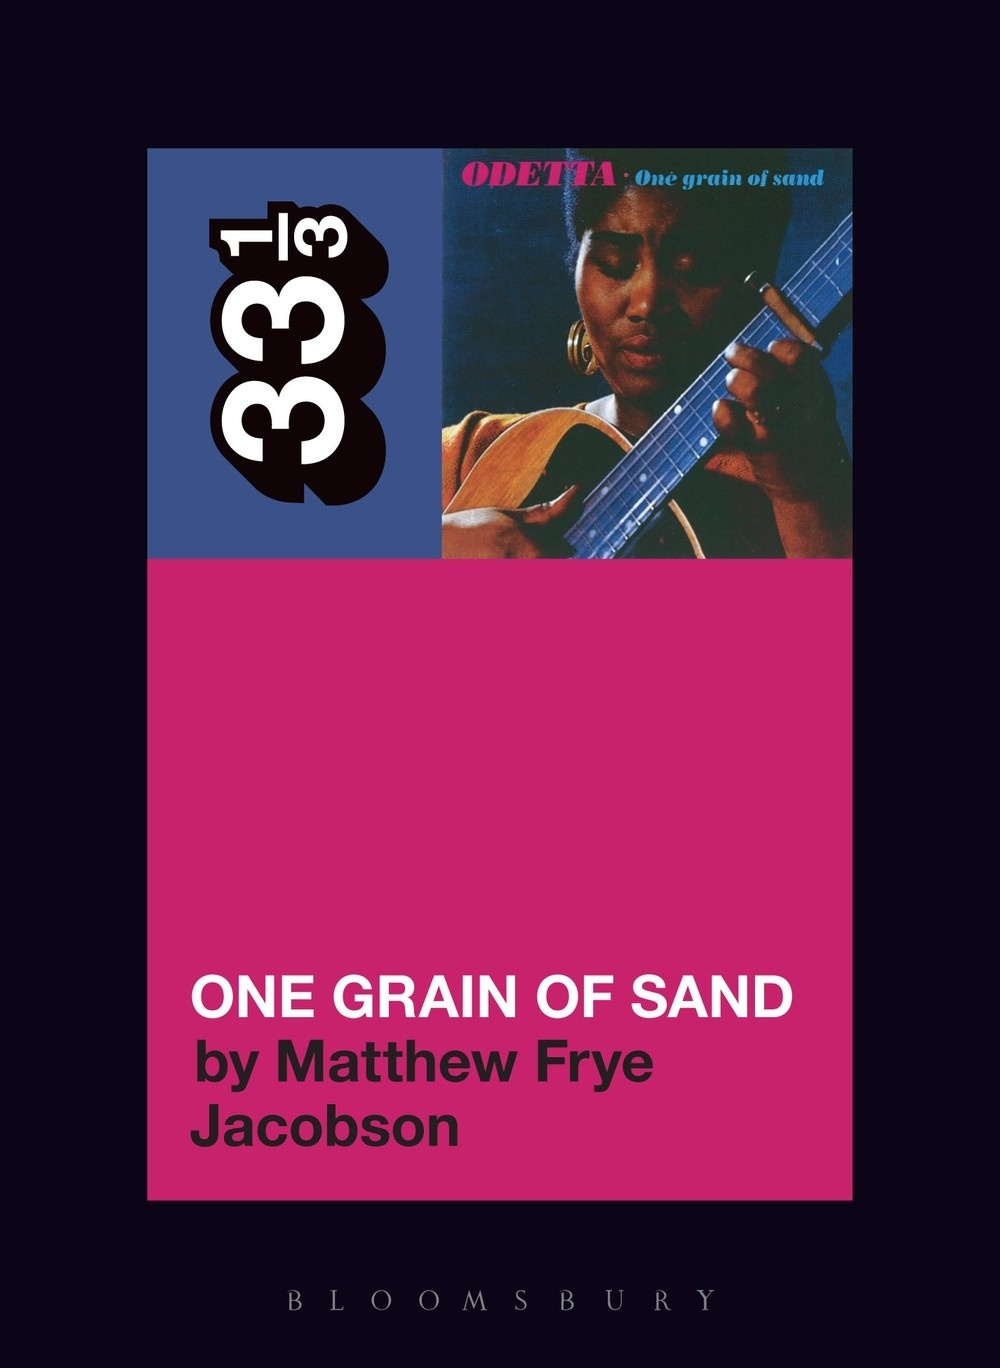 33 1/3 Series 33 1/3 - #136 - Odetta's One Grain Of Sand - Matthew Frye Jacobson